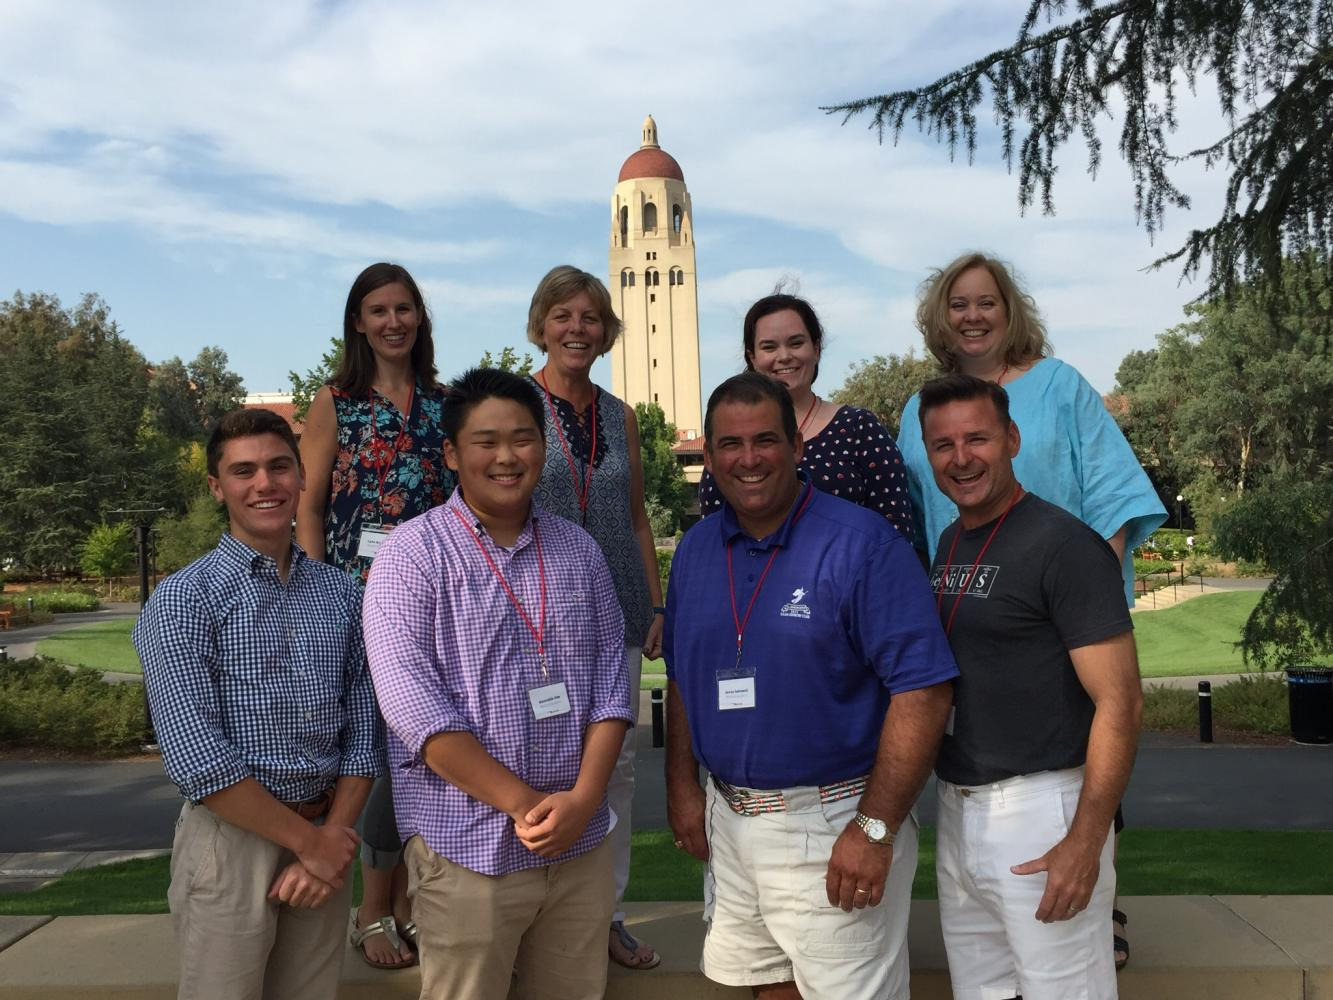 The group from WA at Stanford University